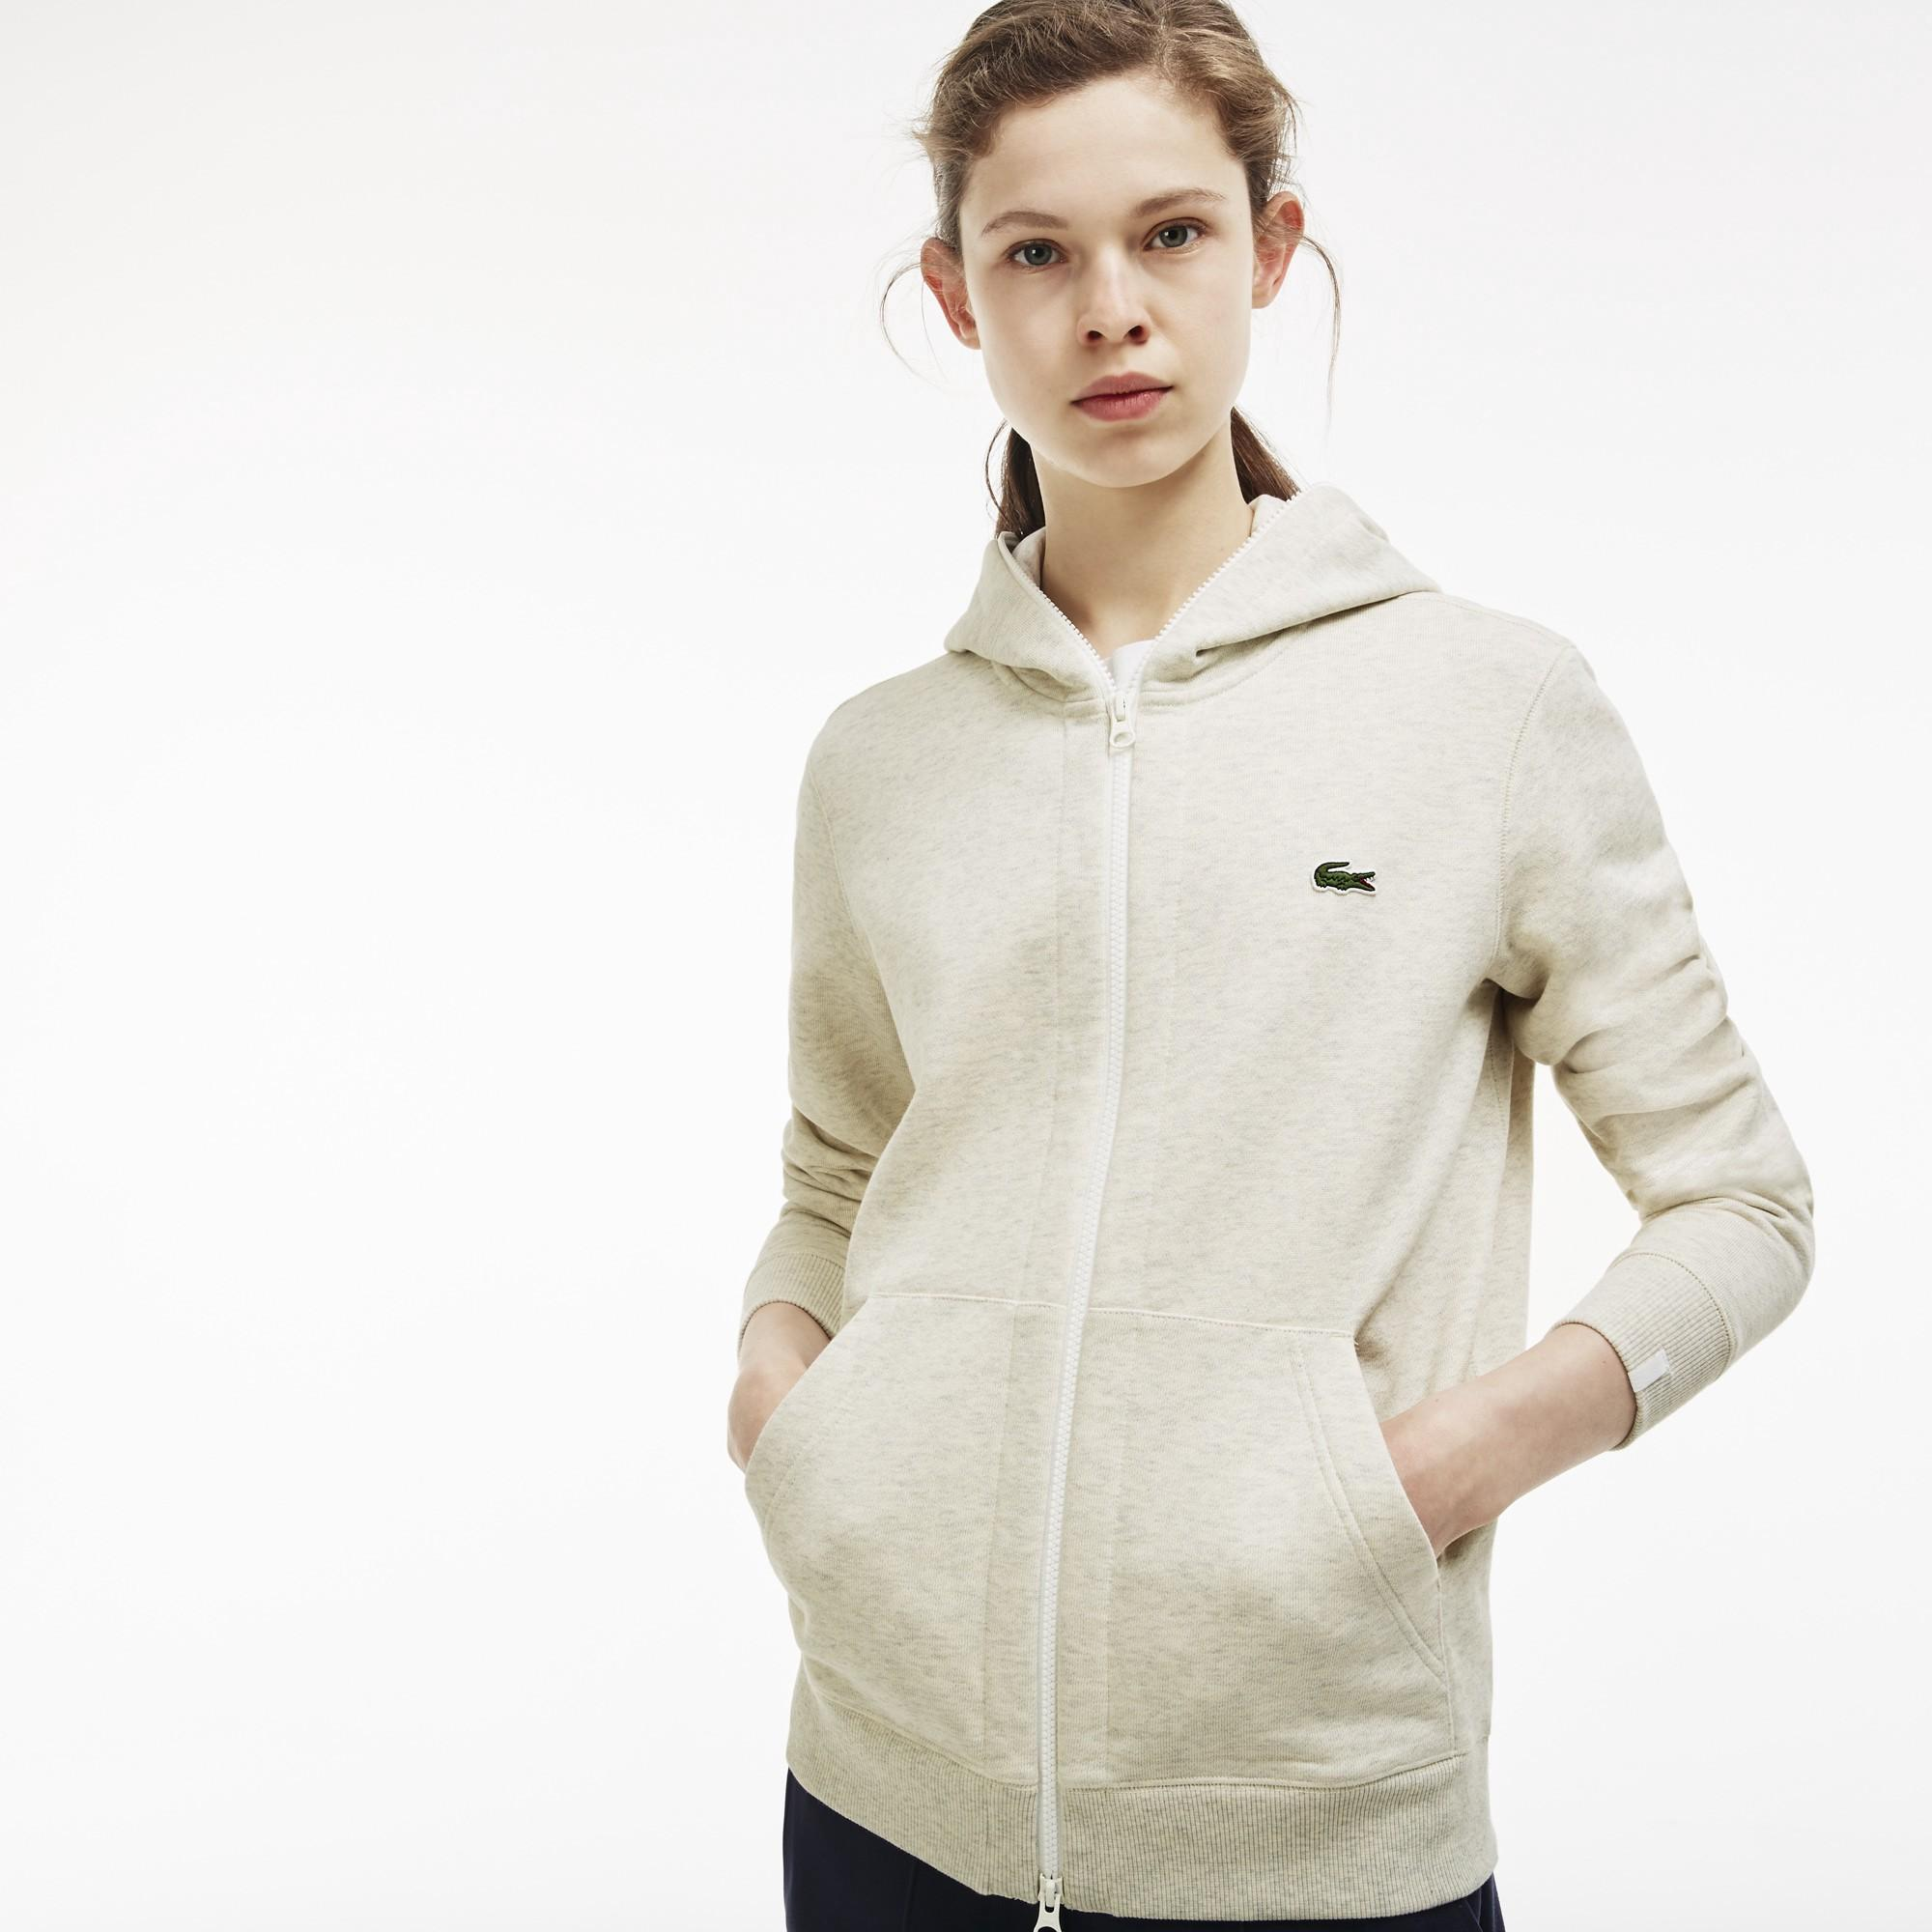 7d58423f5ad60 Lacoste Unisex Live Hooded Zippered Cotton Sweatshirt In Pigeon Grey ...